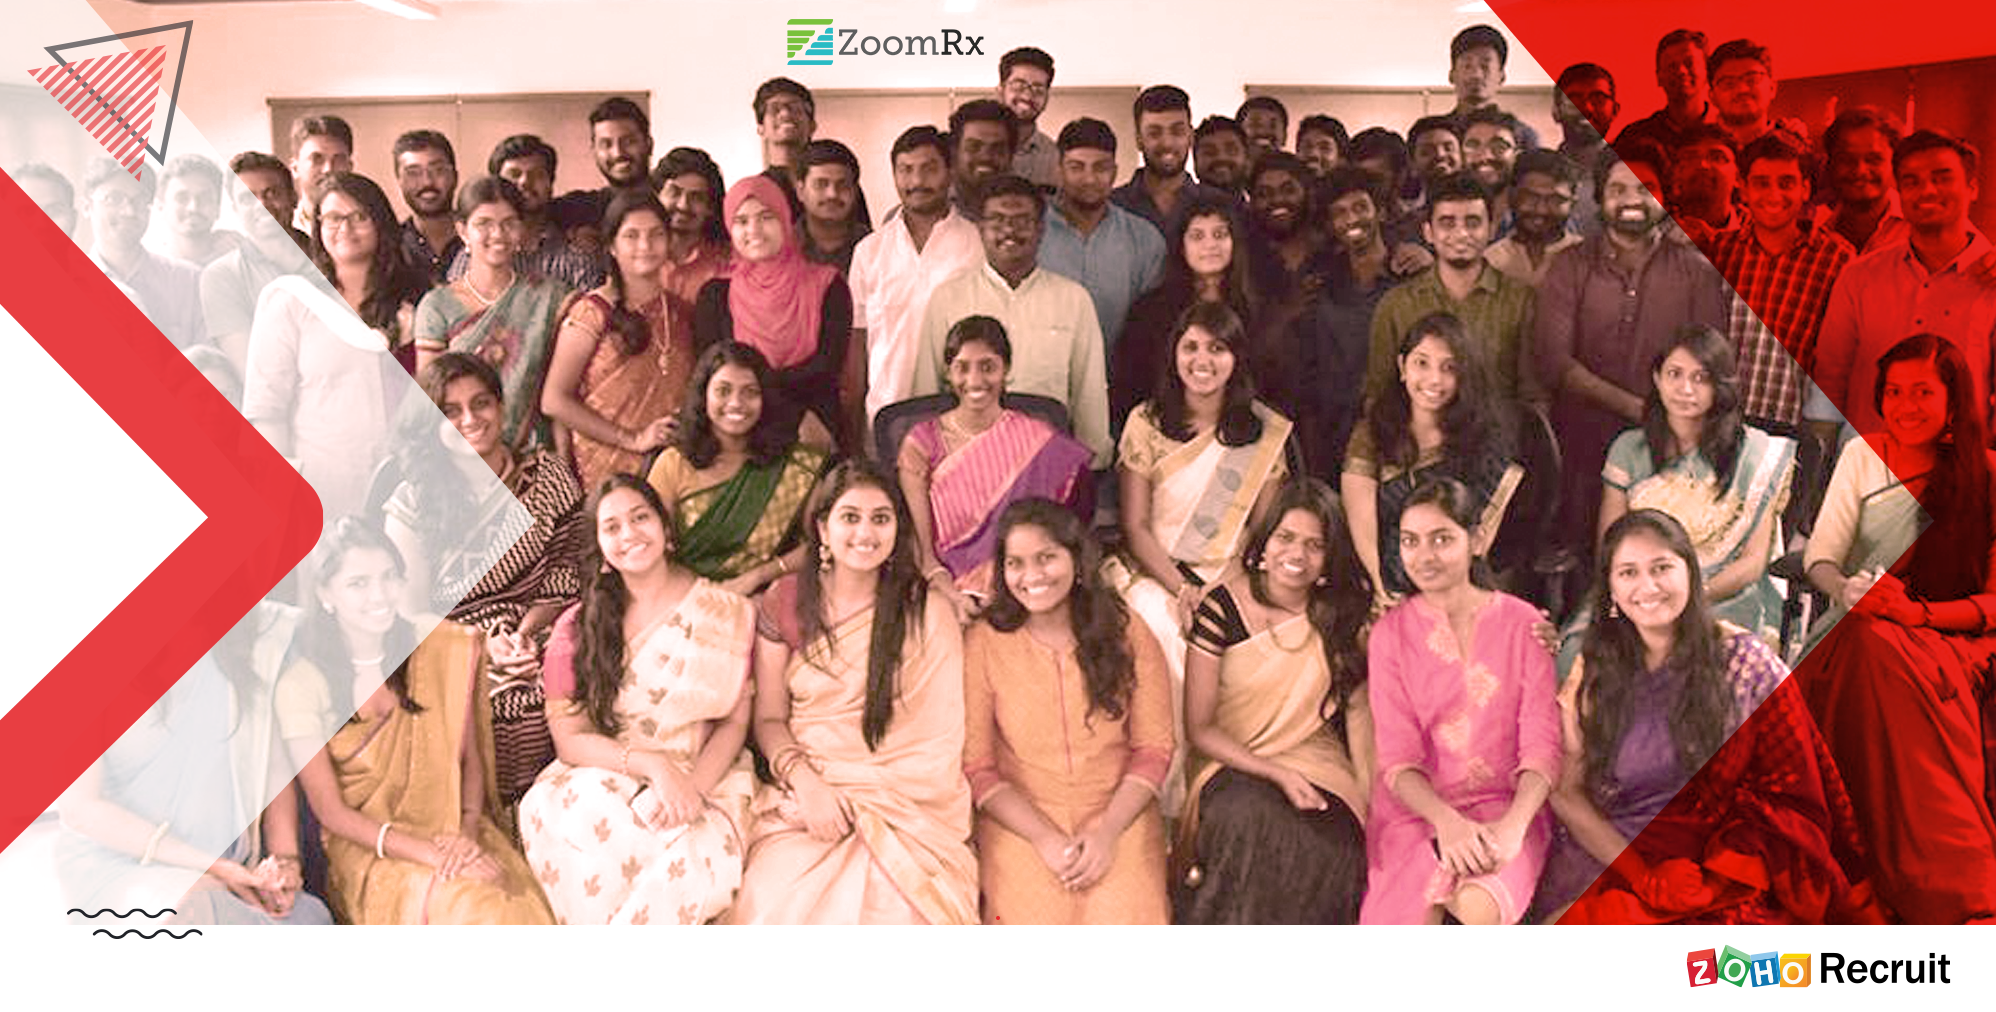 ZoomRx seeks an integrated, automated hiring platform with Zoho Recruit